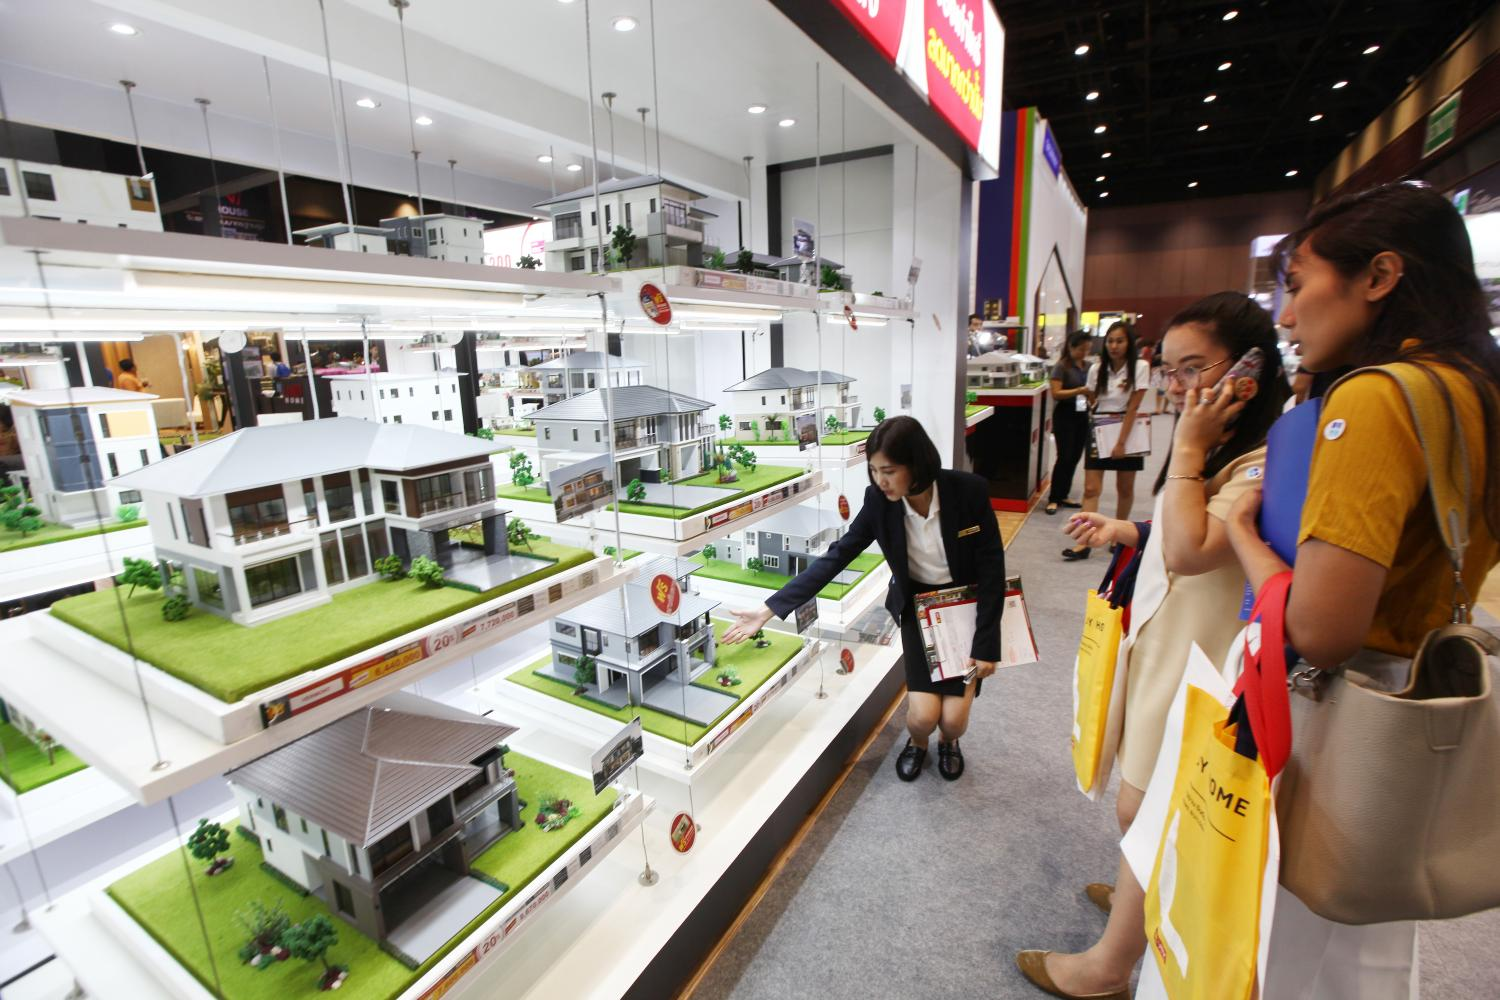 Homebuyers browse model homes at a housing fair. The REIC says the housing market in the third quarter improved from the previous quarter. Phrakrit Juntawong